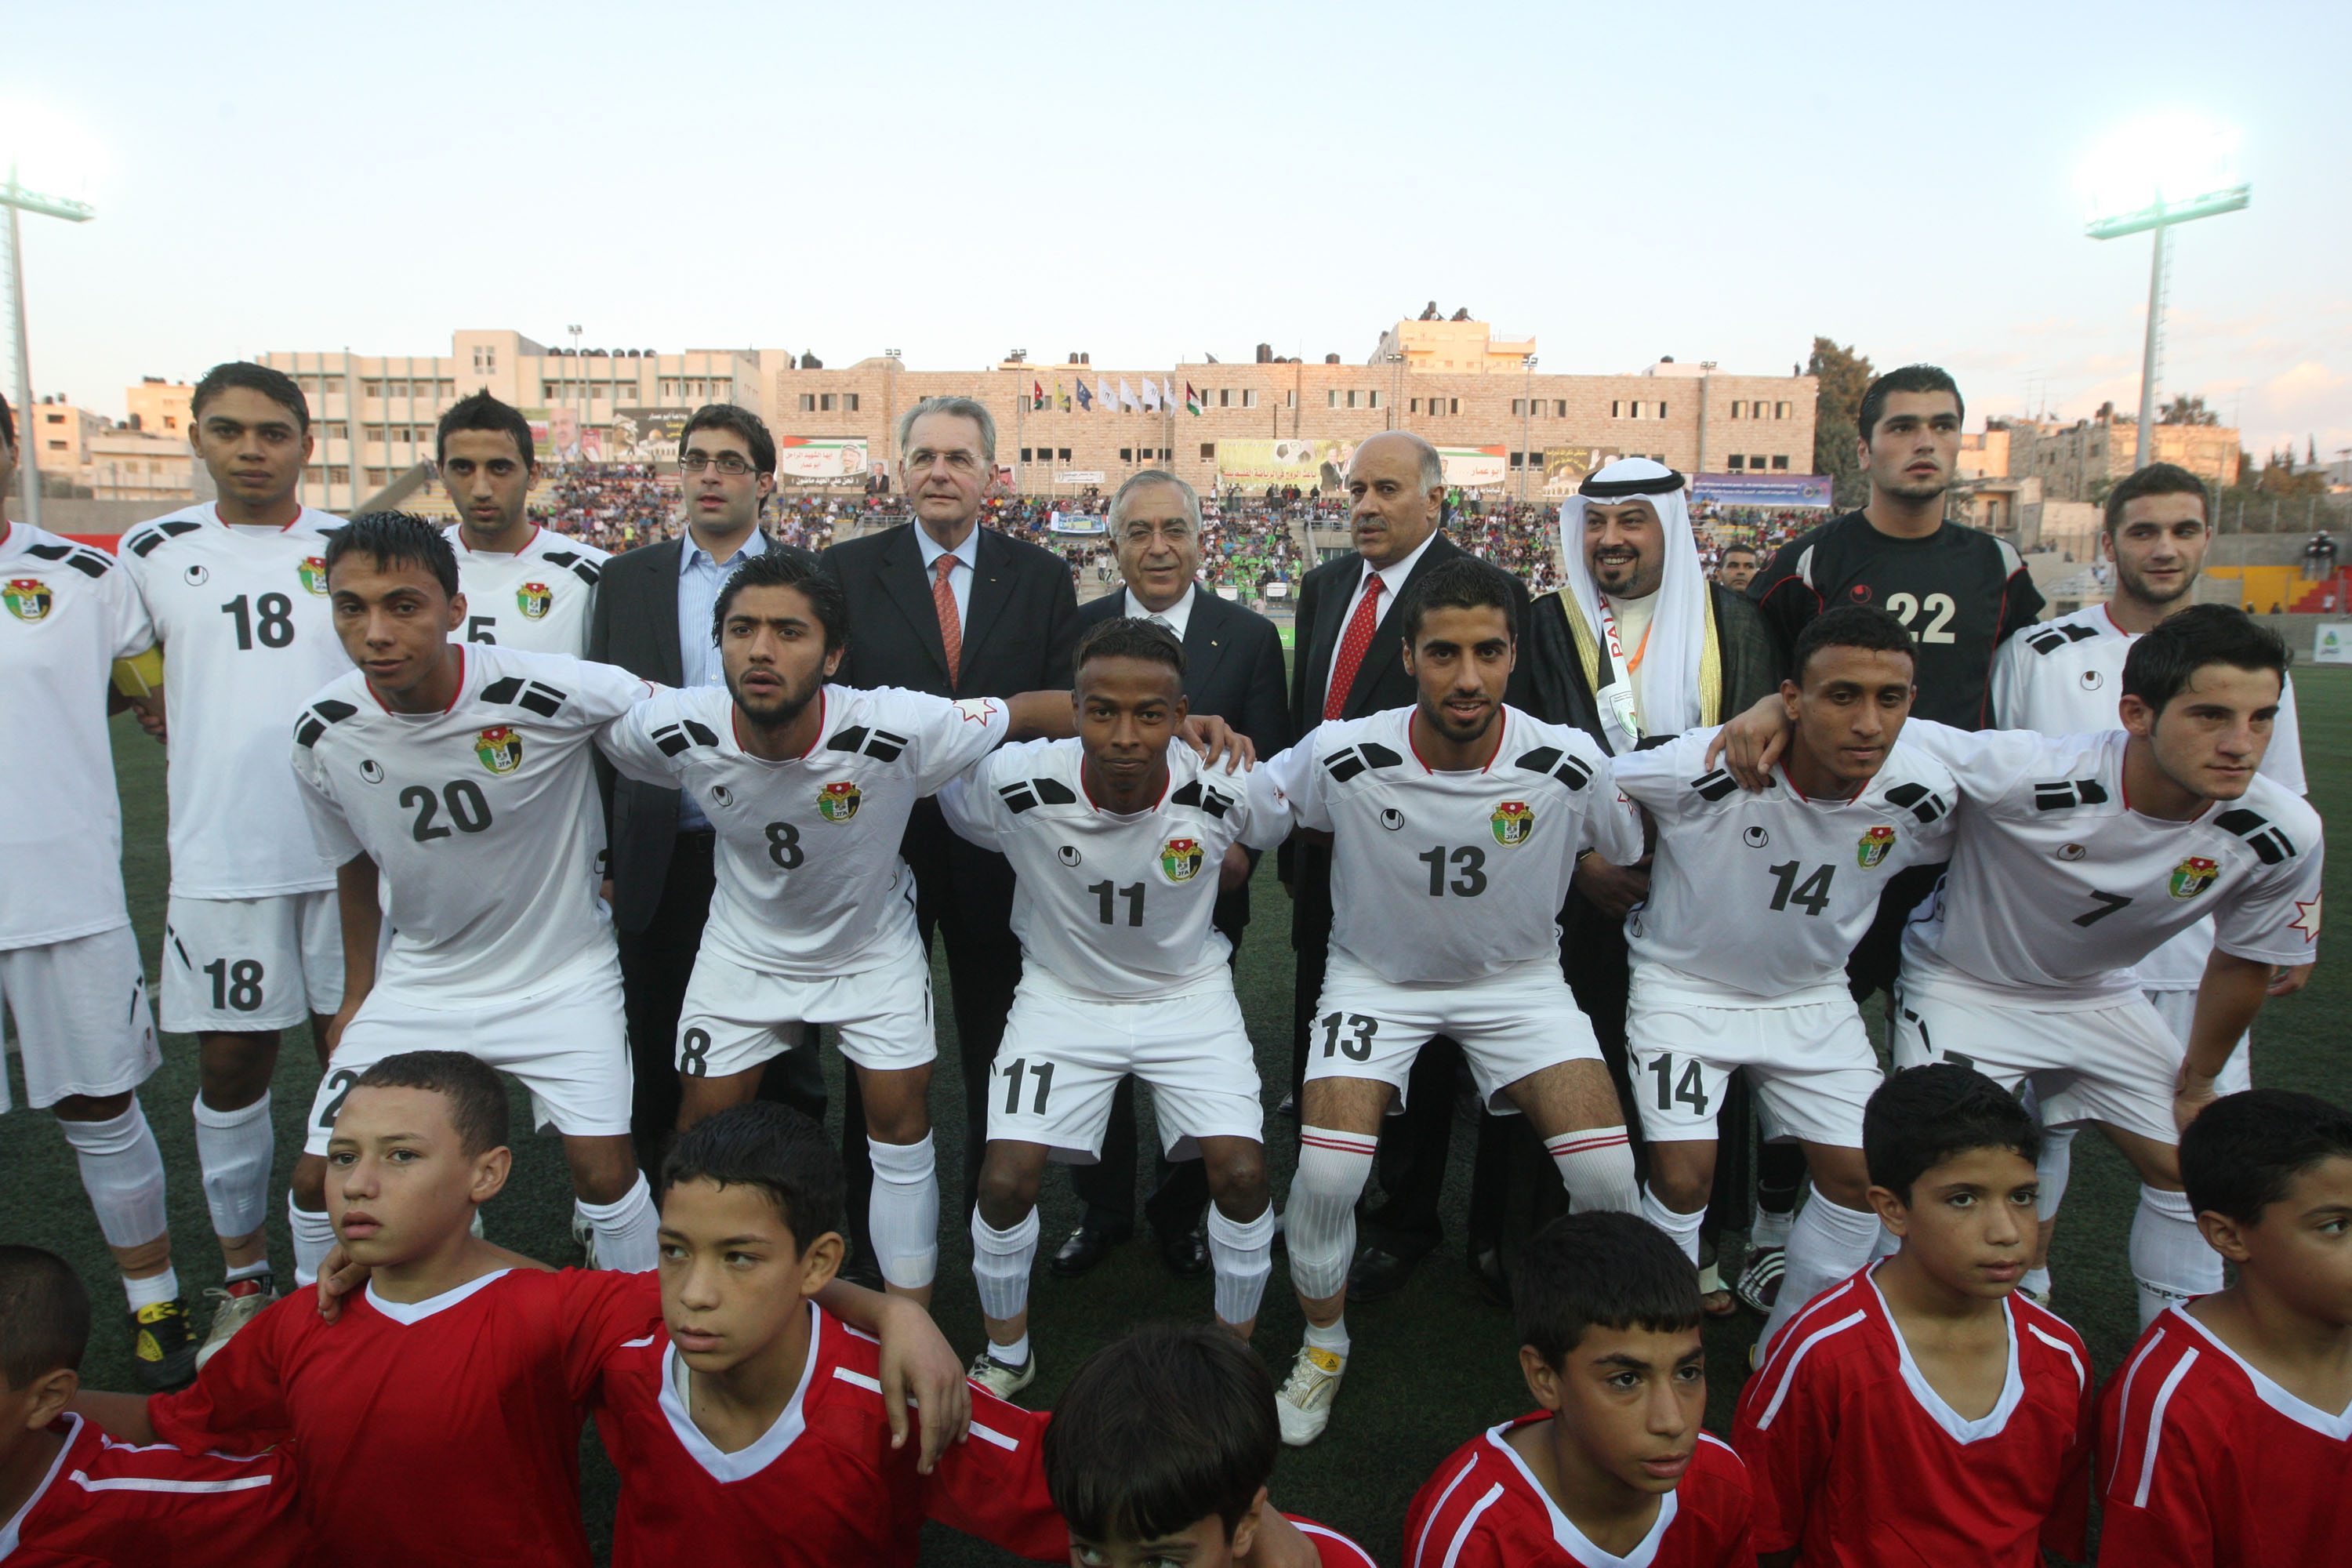 IOC Chief Jacques Rogge and Palestinian Authority Prime Minister Salam Fayyad at West Bank football match (Mustafa Abu Dayeh/Palestinian Authority PM Office)